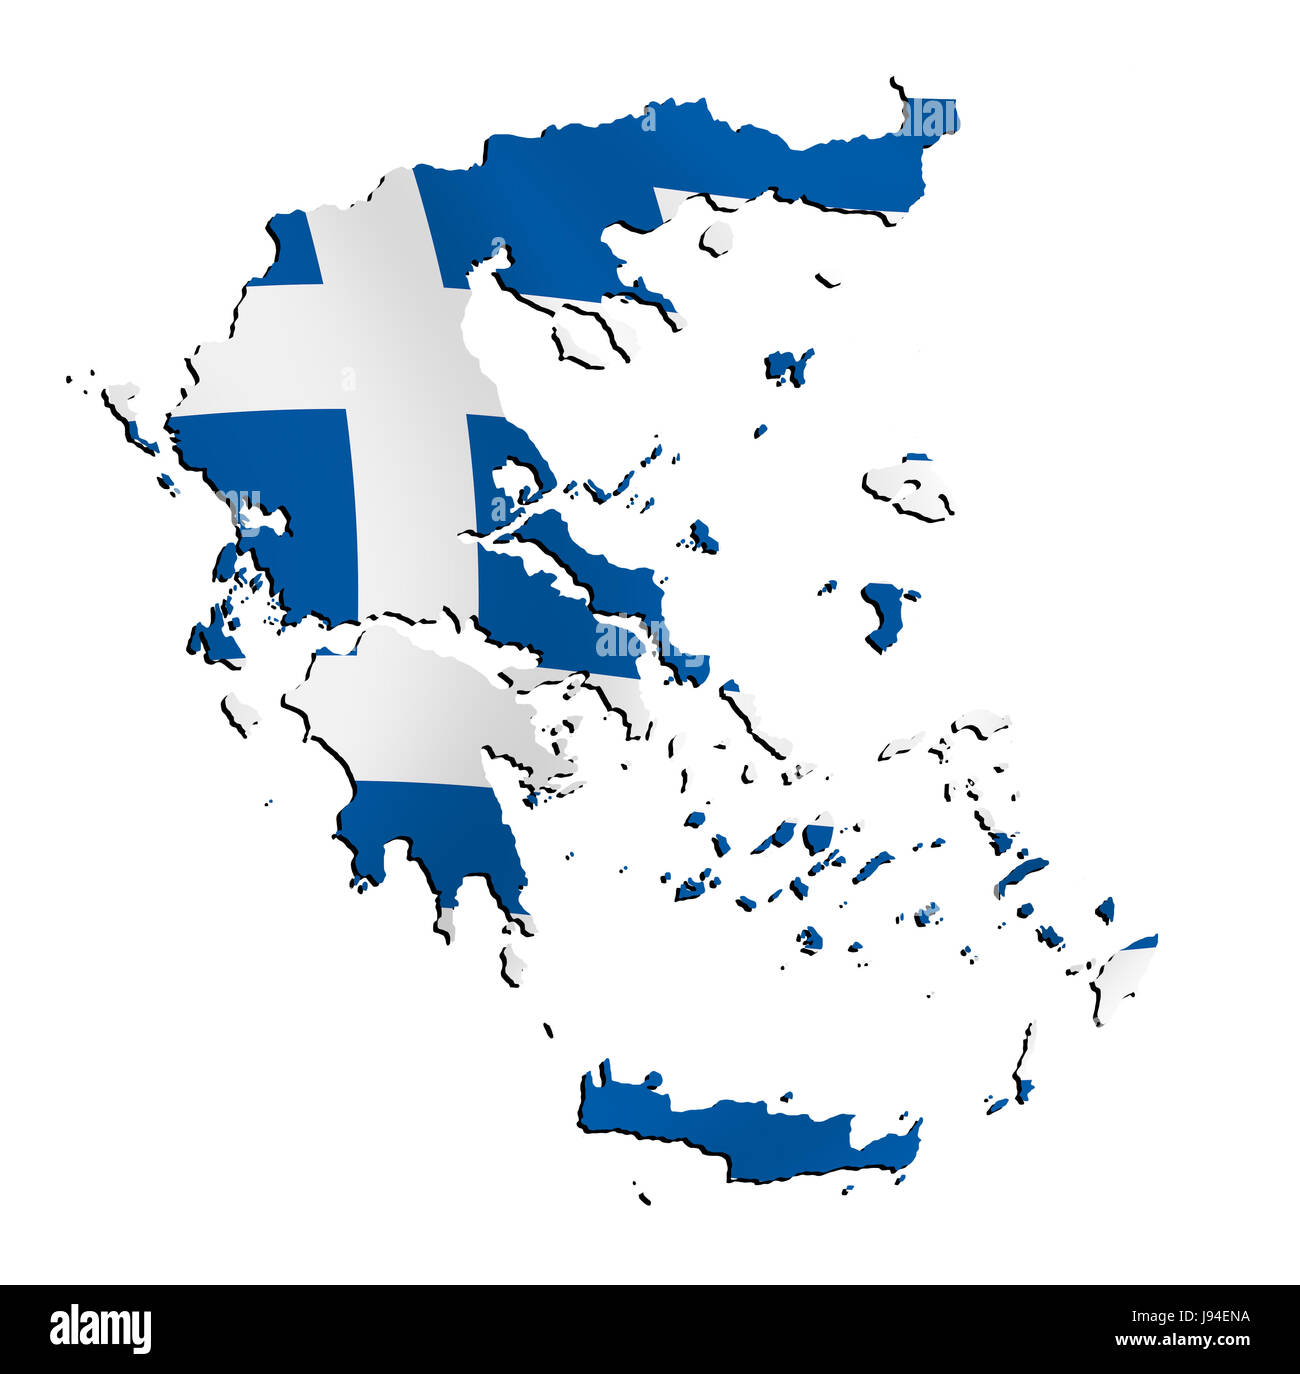 Greece flag border outline atlas map of the world map greece flag border outline atlas map of the world map detail isolated gumiabroncs Gallery